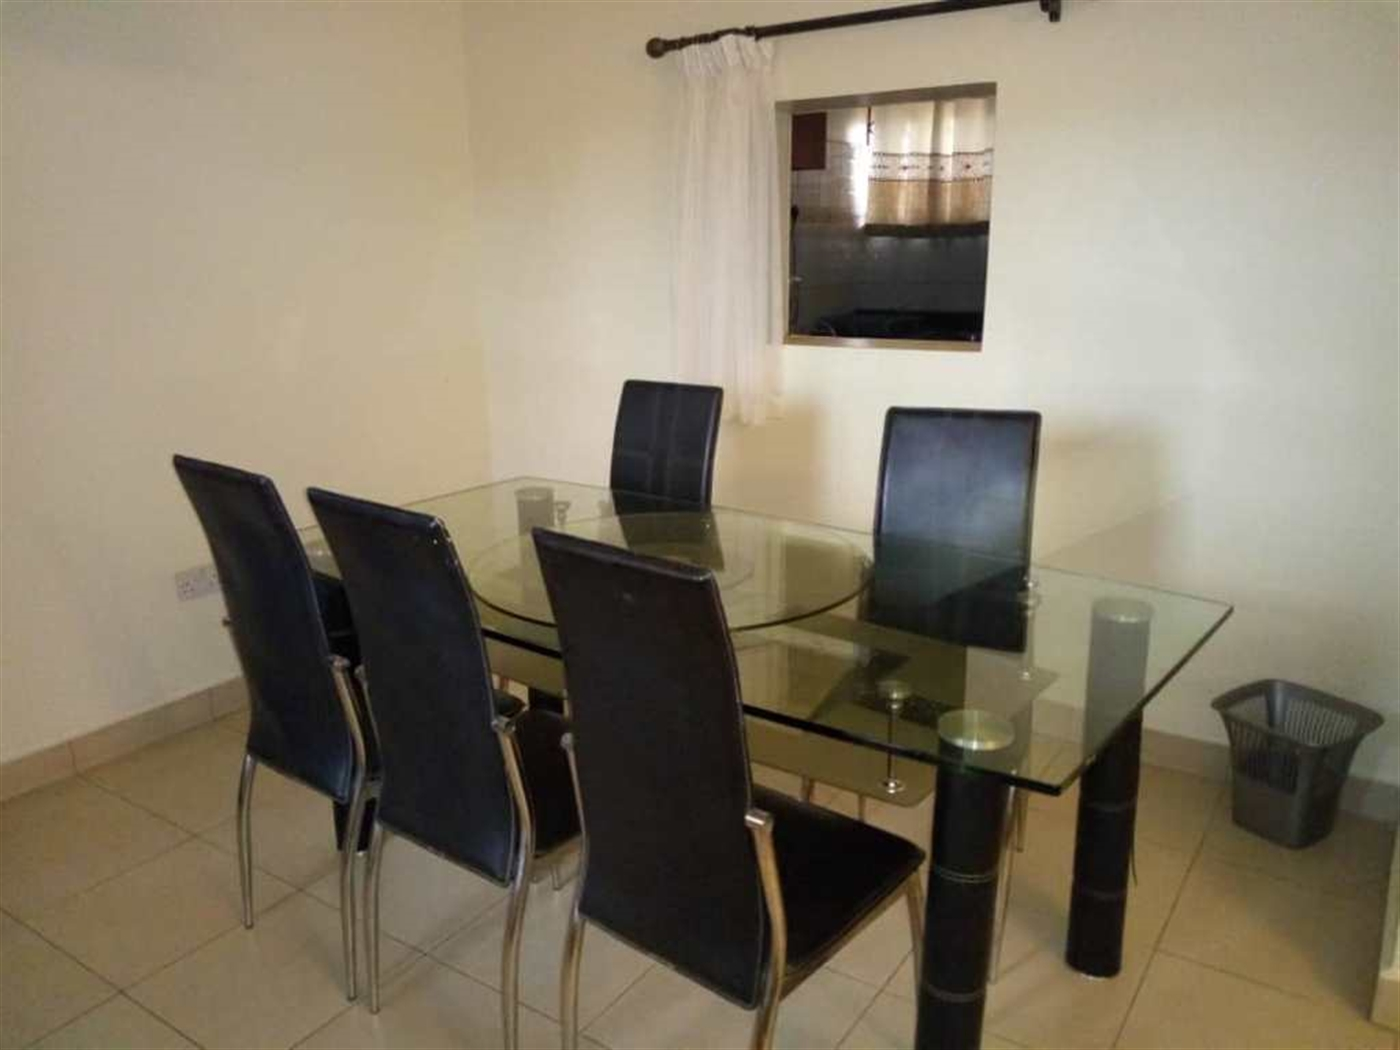 Apartment for rent in Mawanda Kampala